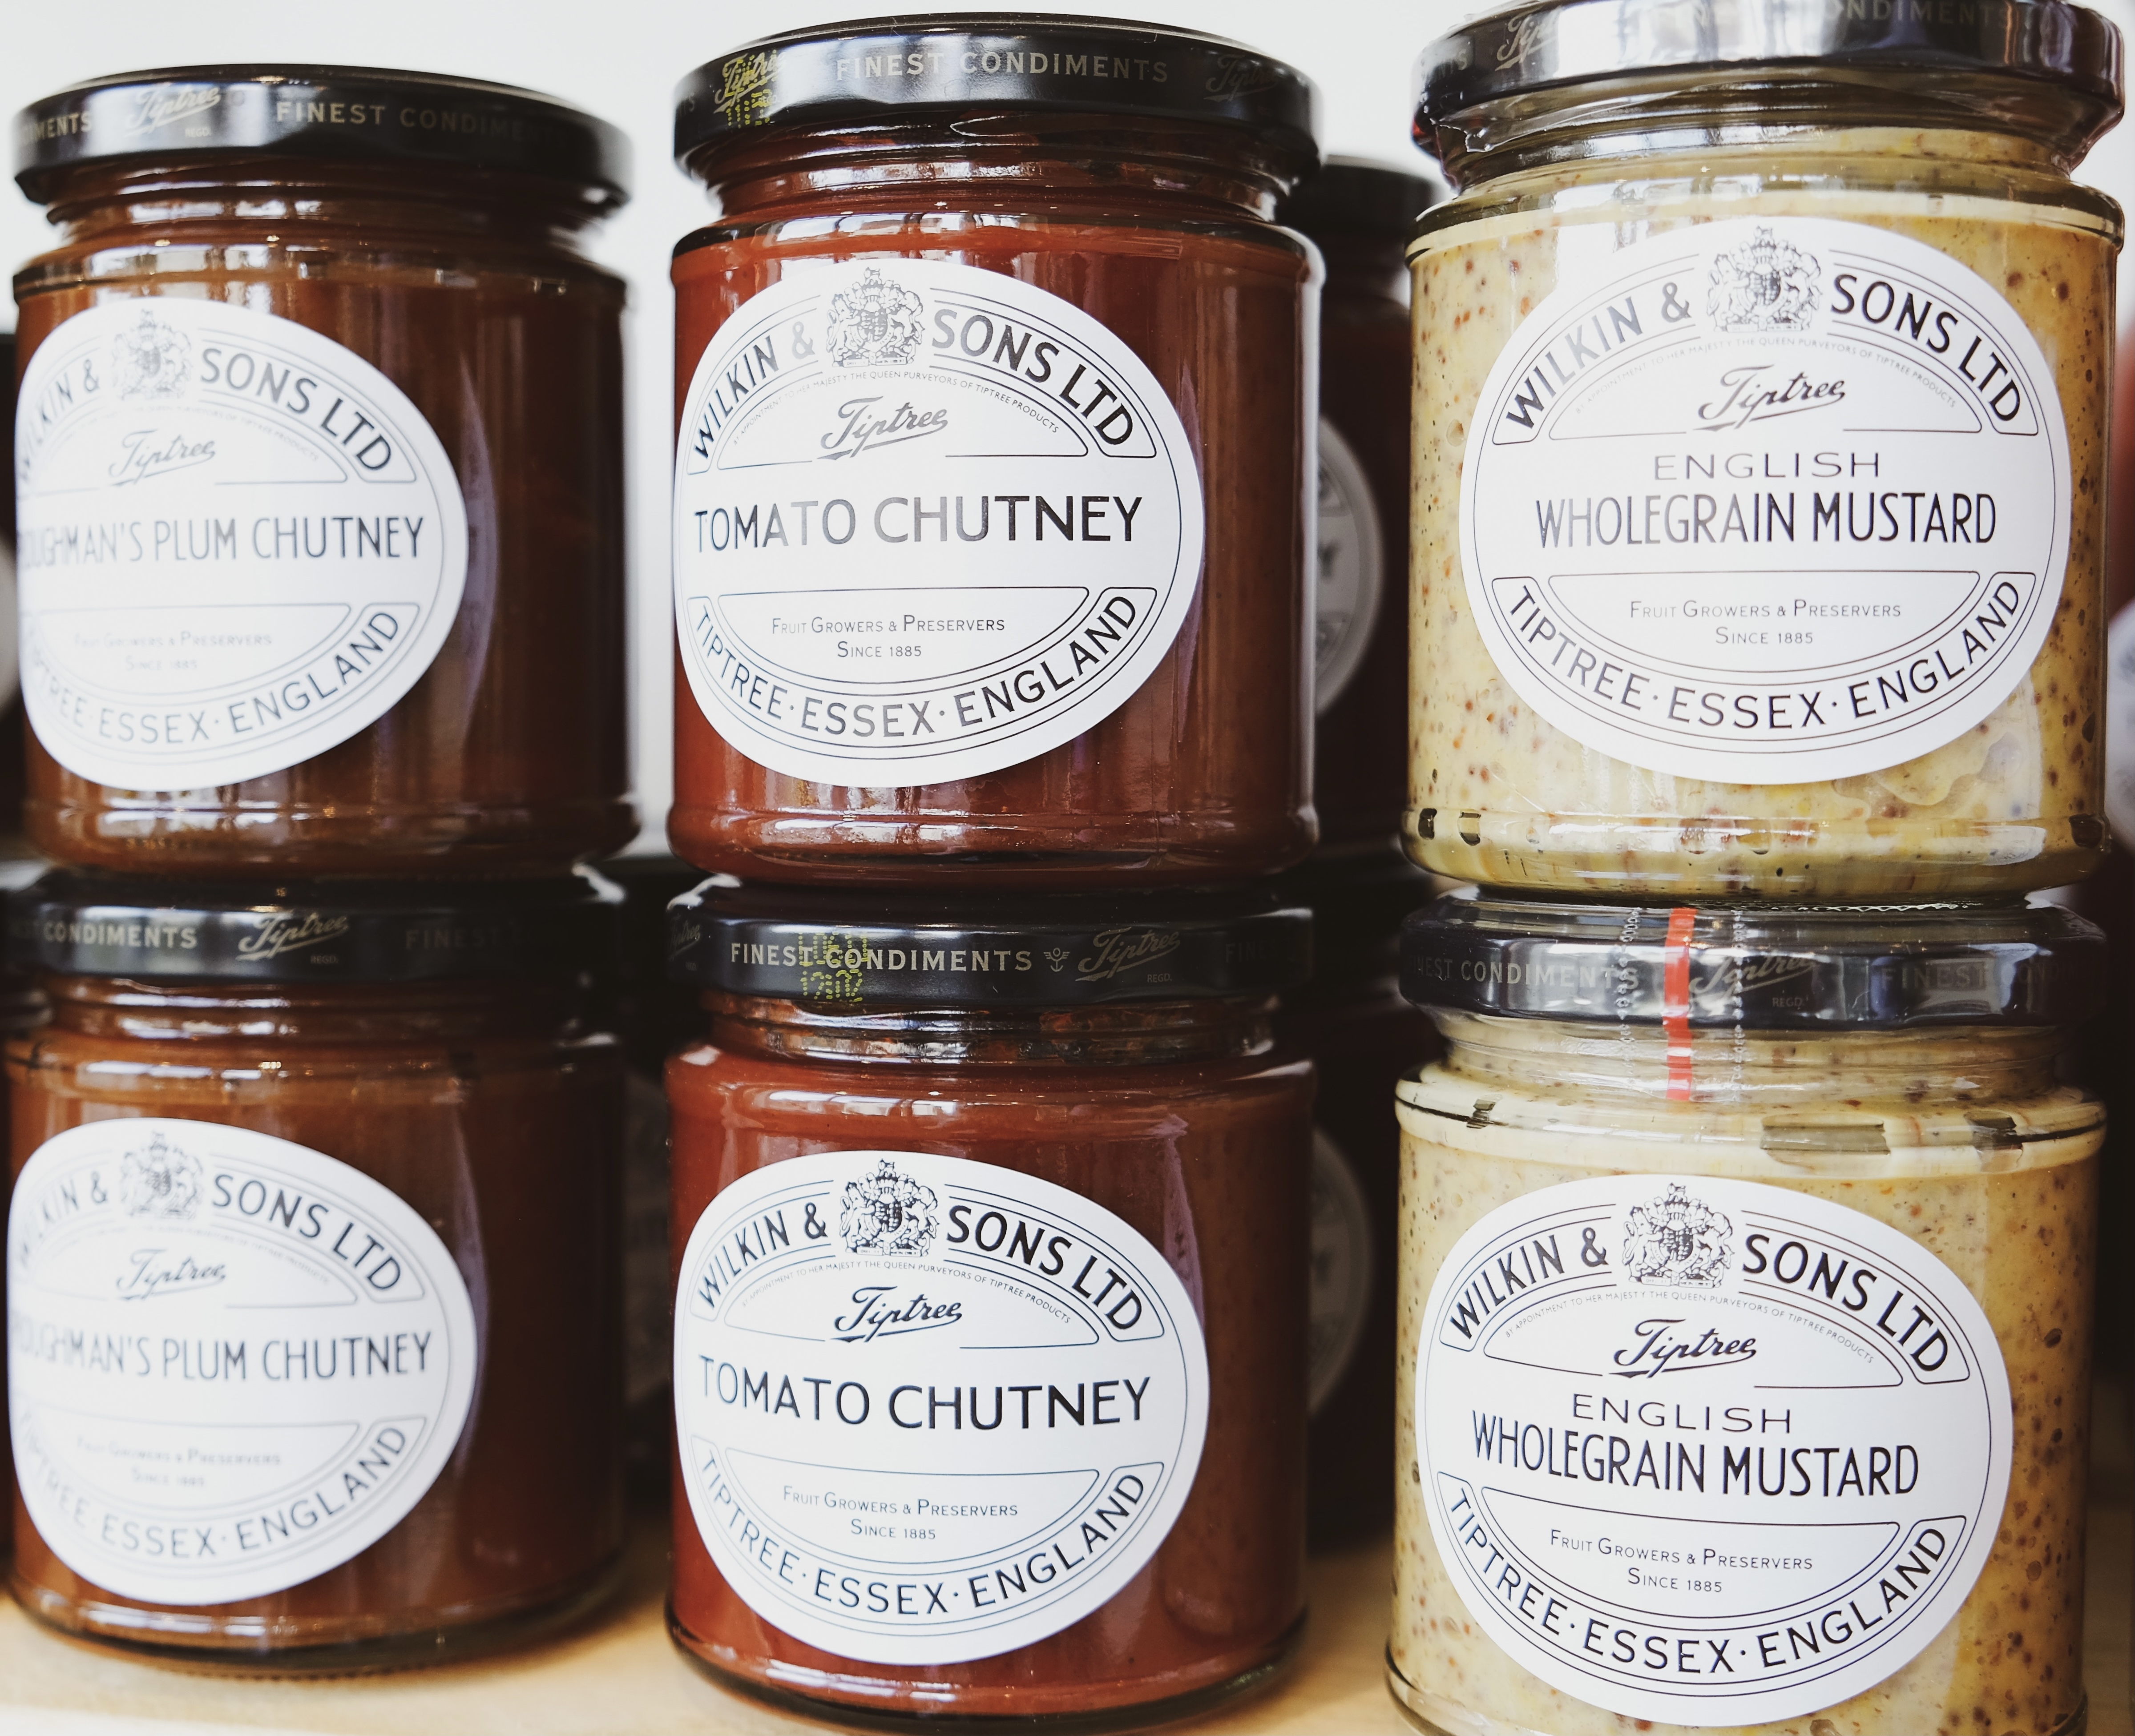 Wilkin & Sons jams and sauce range available at the Essex Produce Co. in Kelvedon, Essex.